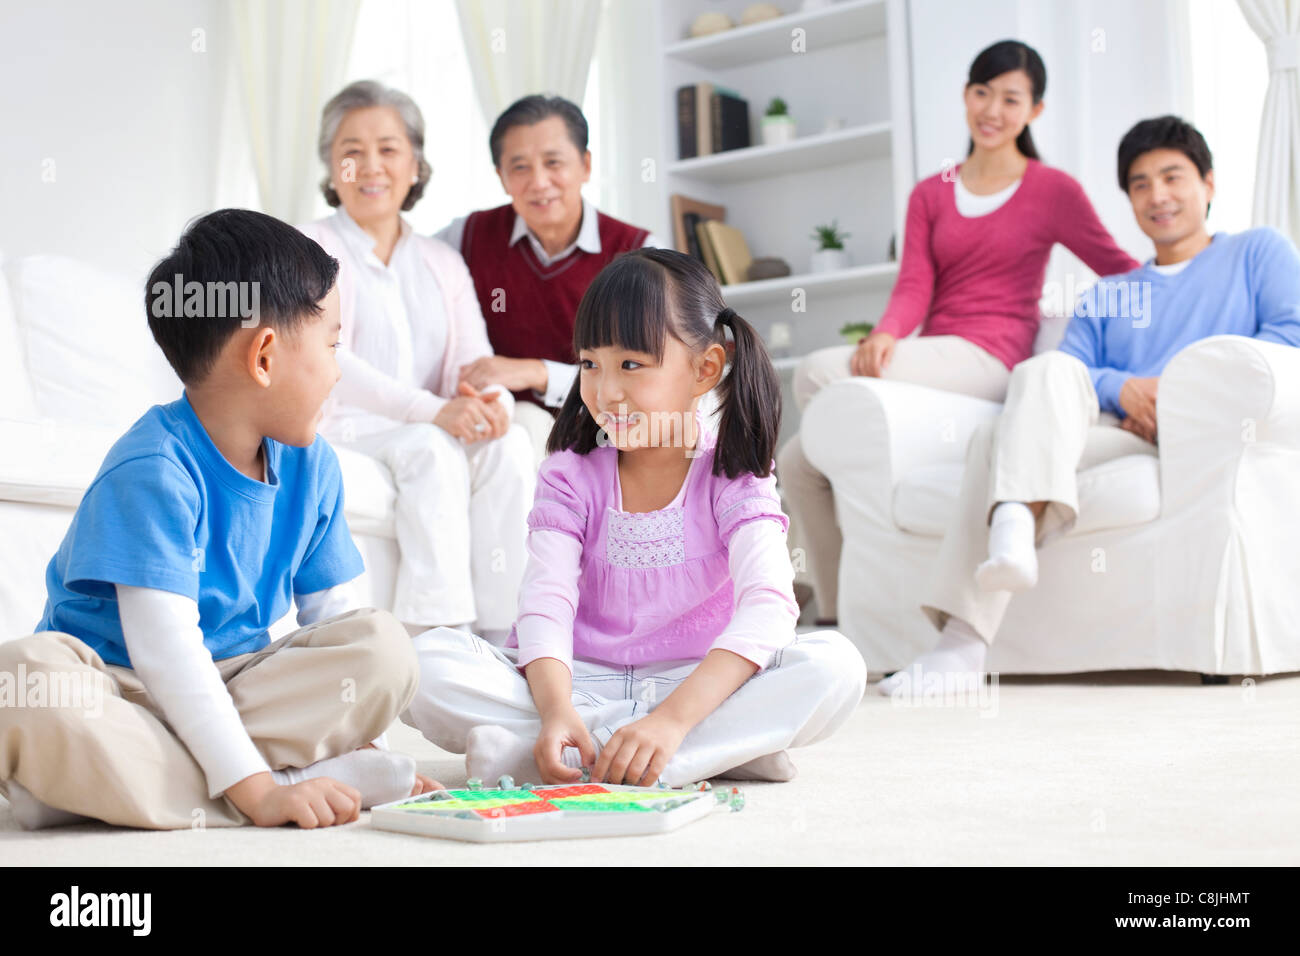 Chinese children playing with toys on the floor with grandparents and parents behind them - Stock Image